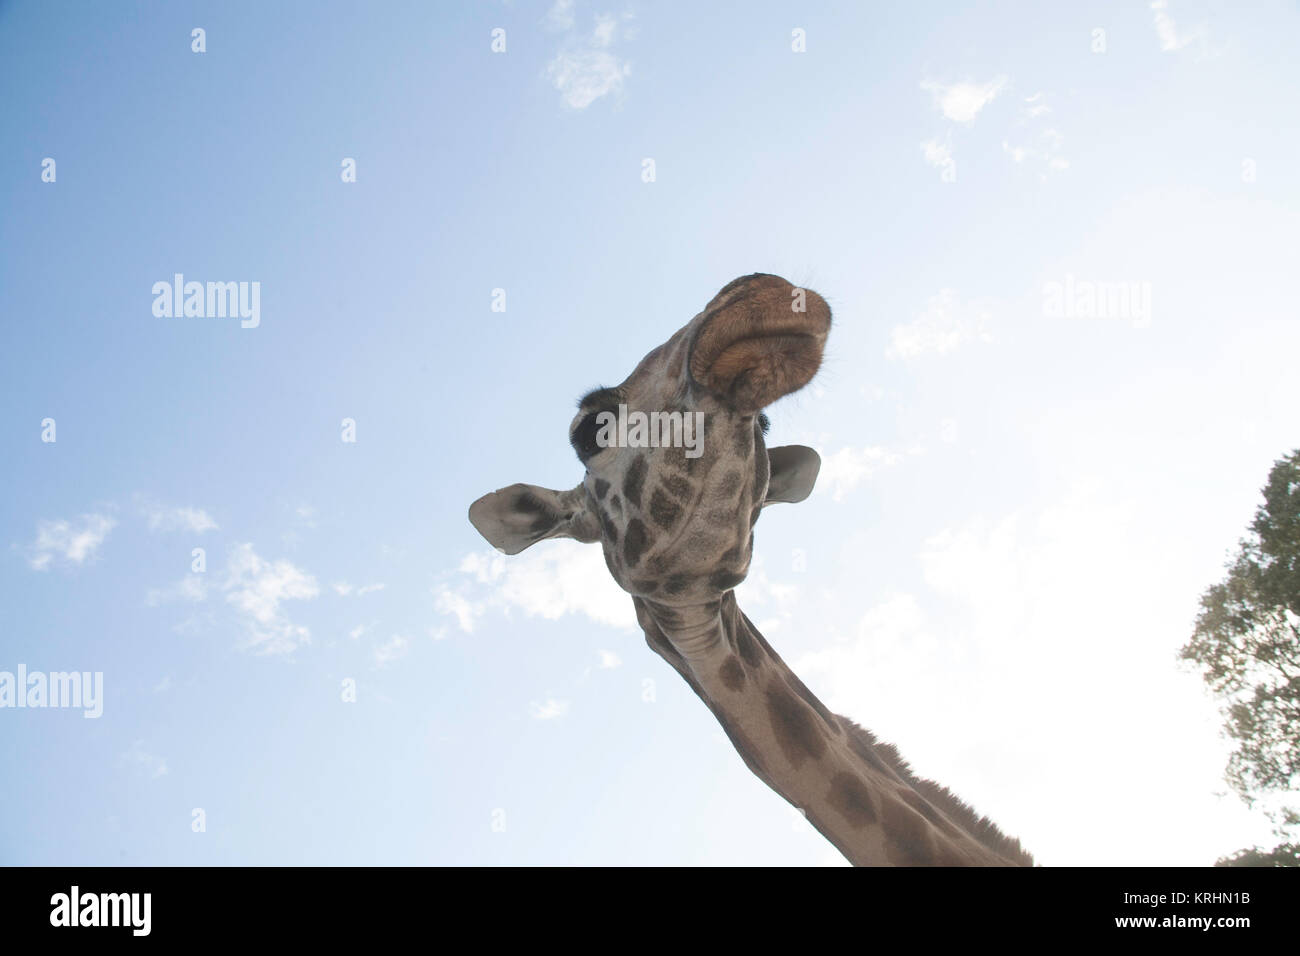 Rothschild giraffe at the Giraffe Centre, Nairobi, Kenya, East Africa - Stock Image